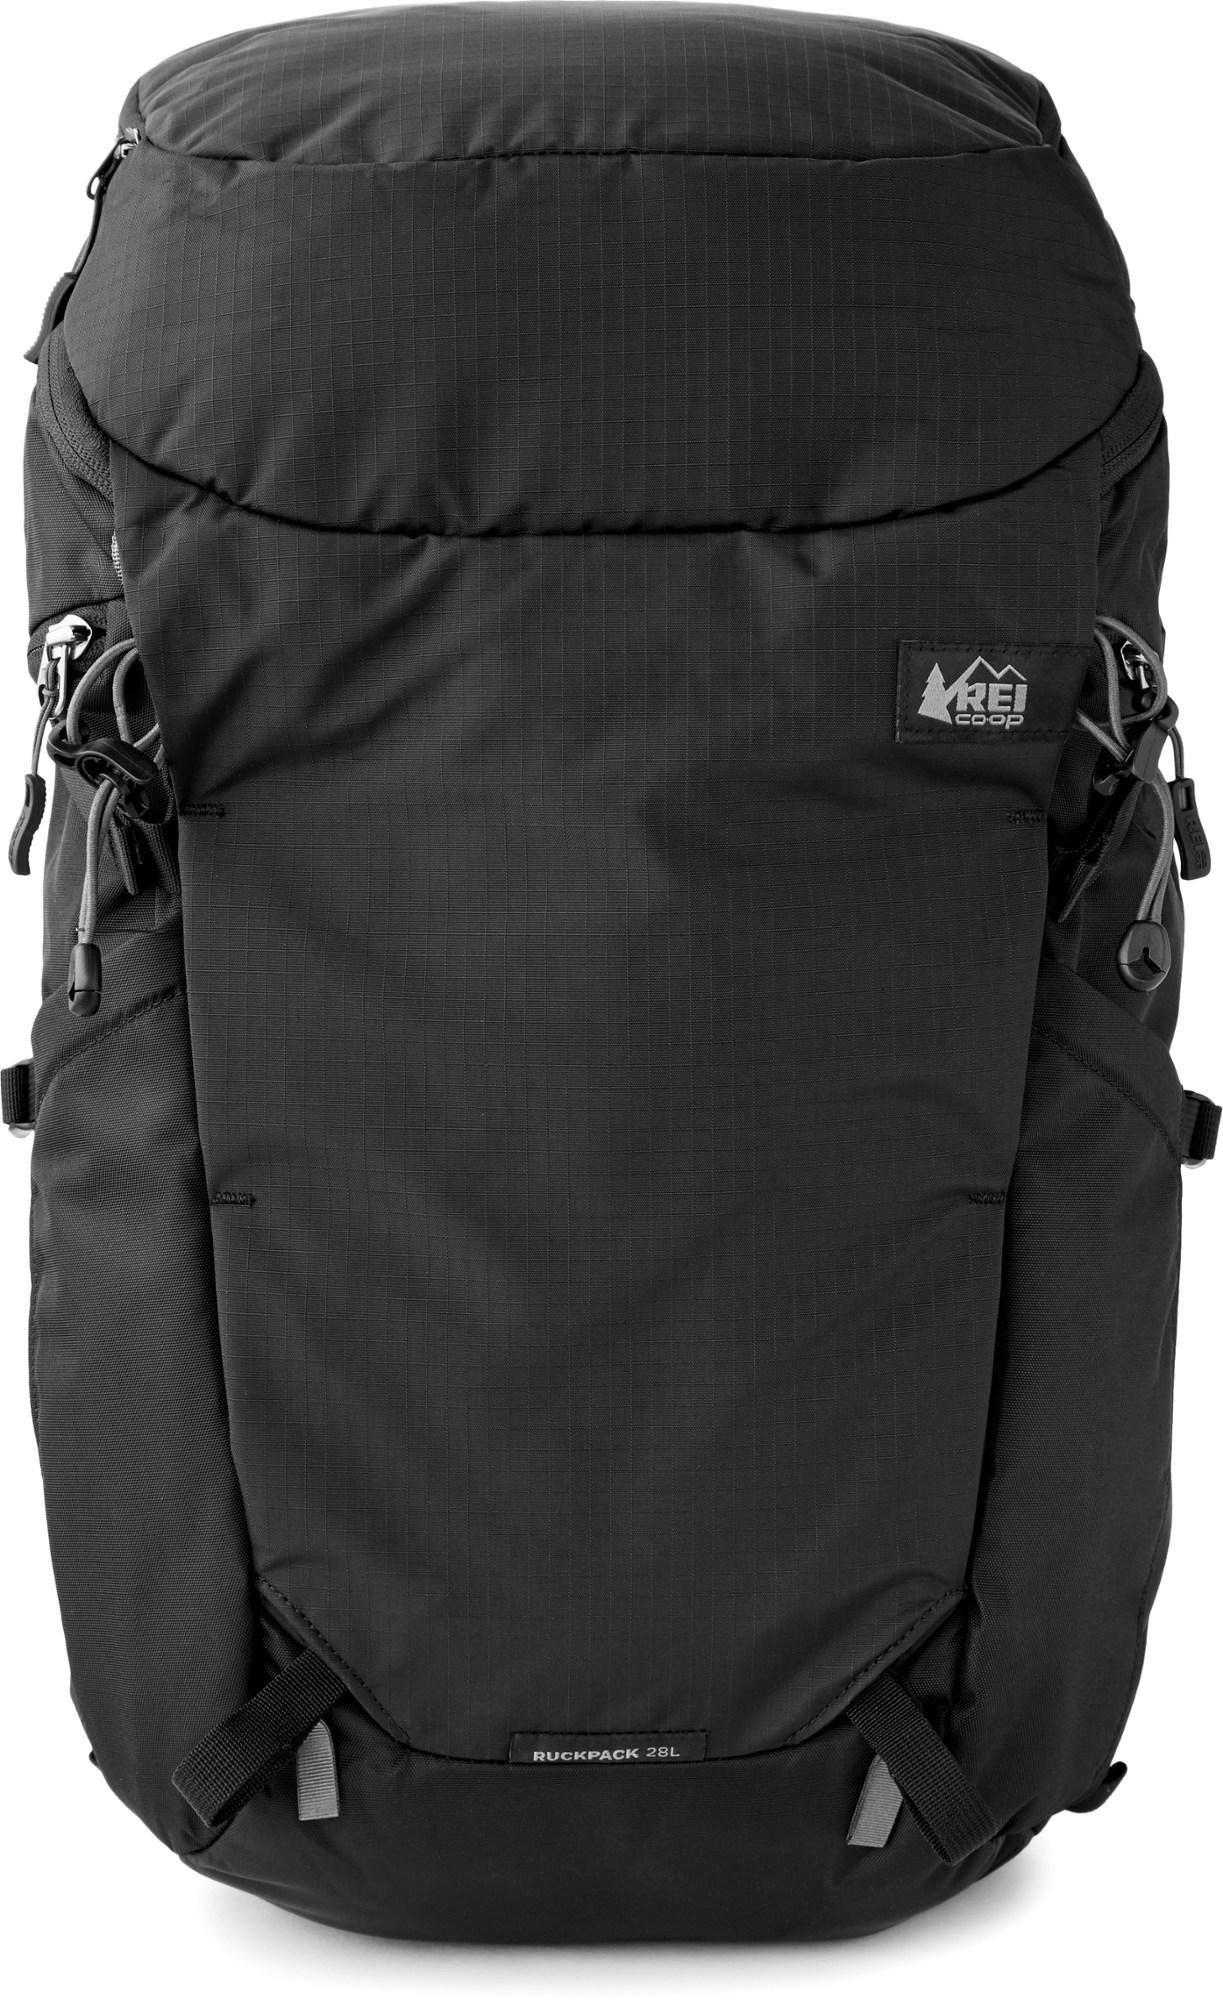 REI Co-op Ruckpack 28 Pack